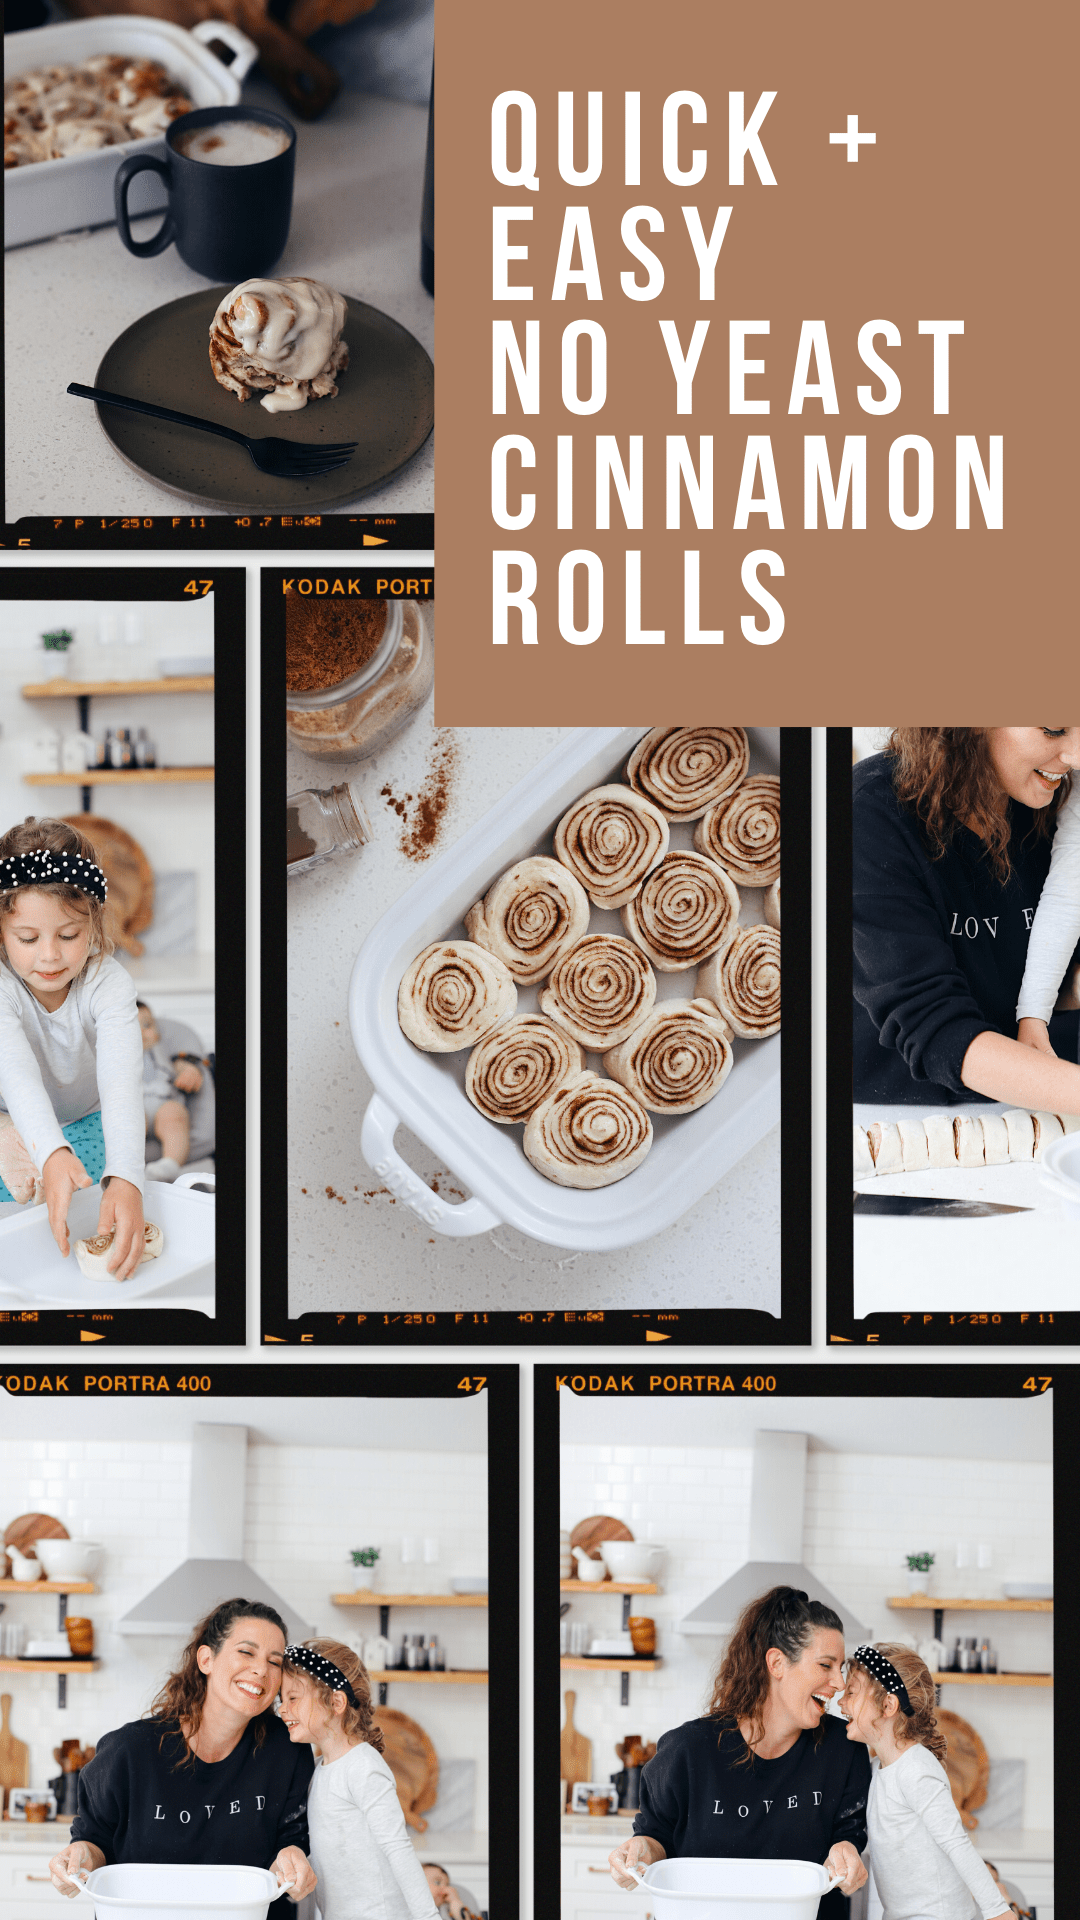 Quick and easy no yeast cinnamon rolls dough. Tips for no buttermilk and buttermilk substitute. NO waiting overnight. Click for the recipe and videos of yeast free cinnamon rolls homemade. Best yeast free cinnamon buns! Rolled with rich and gooey filling, clone of a Cinnabon cream cheese icing, and made without yeast, Homemade Cinnamon Rolls are ready to enjoy in under an hour. | Bread Machine Cinnamon Roll Recipe by popular Florida lifestyle blog, Fresh Mommy Blog: Pinterest image of cinnamon rolls in a white ceramic baking dish next to a bowl of cream cheese icing.